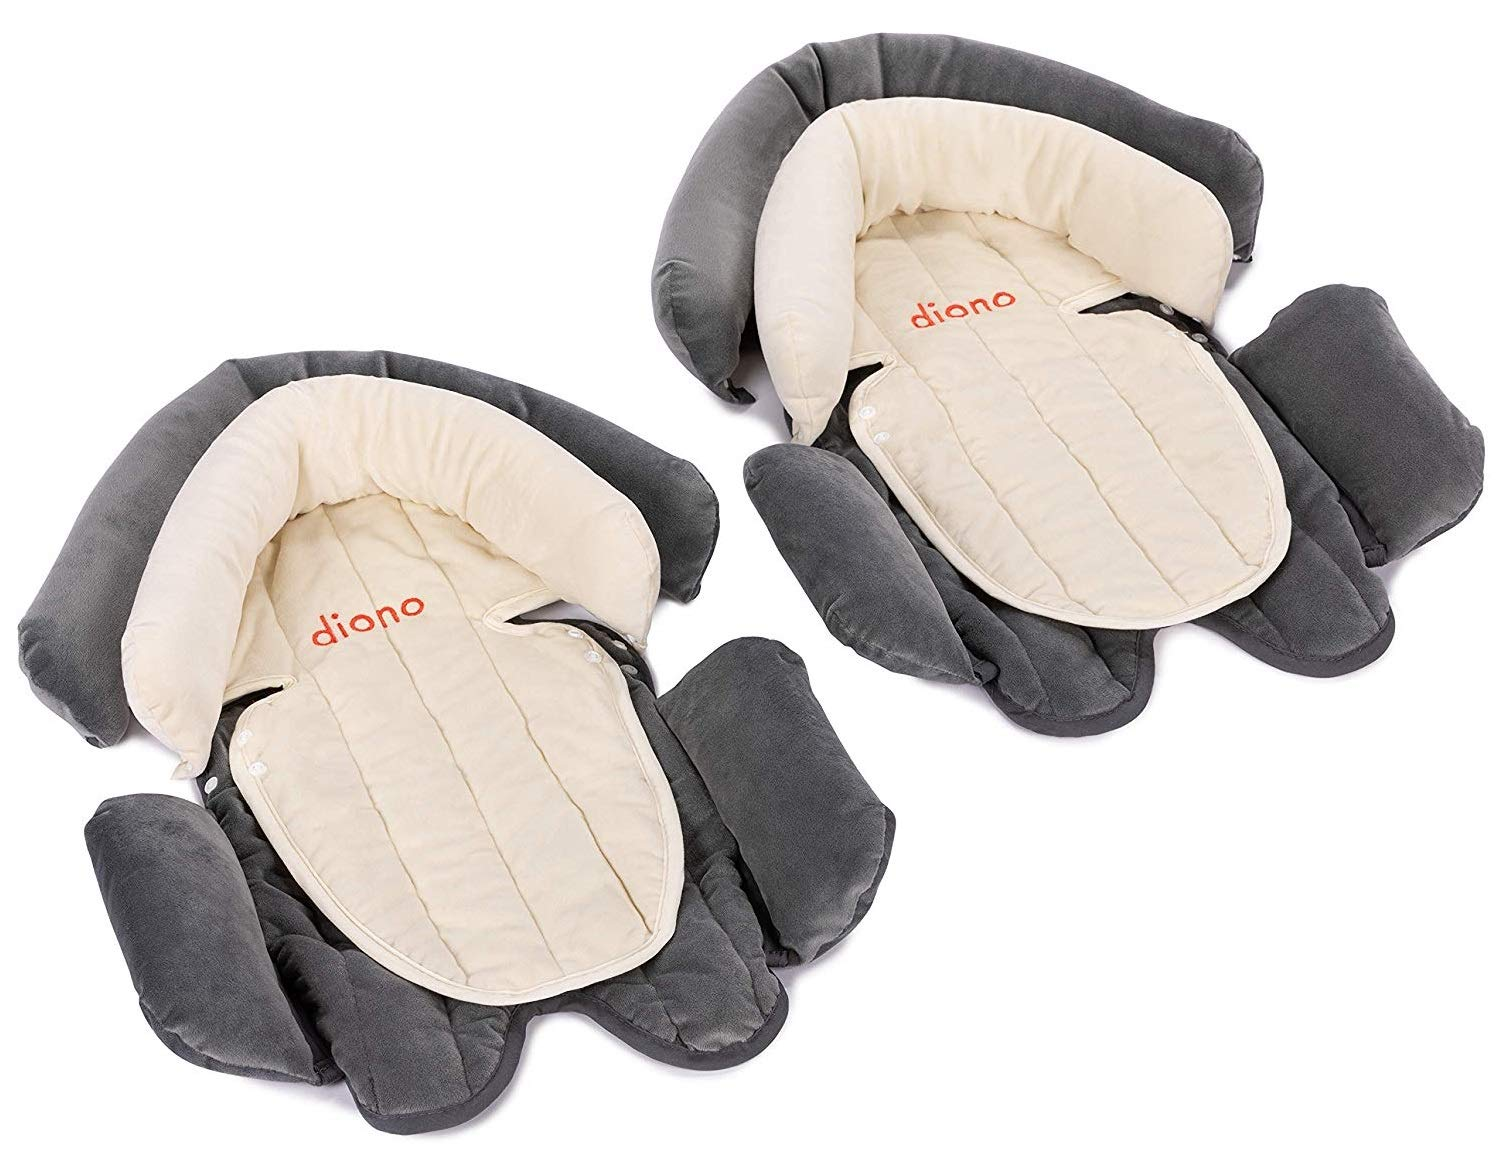 Cuddle Soft 2-Pack Grey//Ivory Diono Two2Go 2-in-1 Head Support